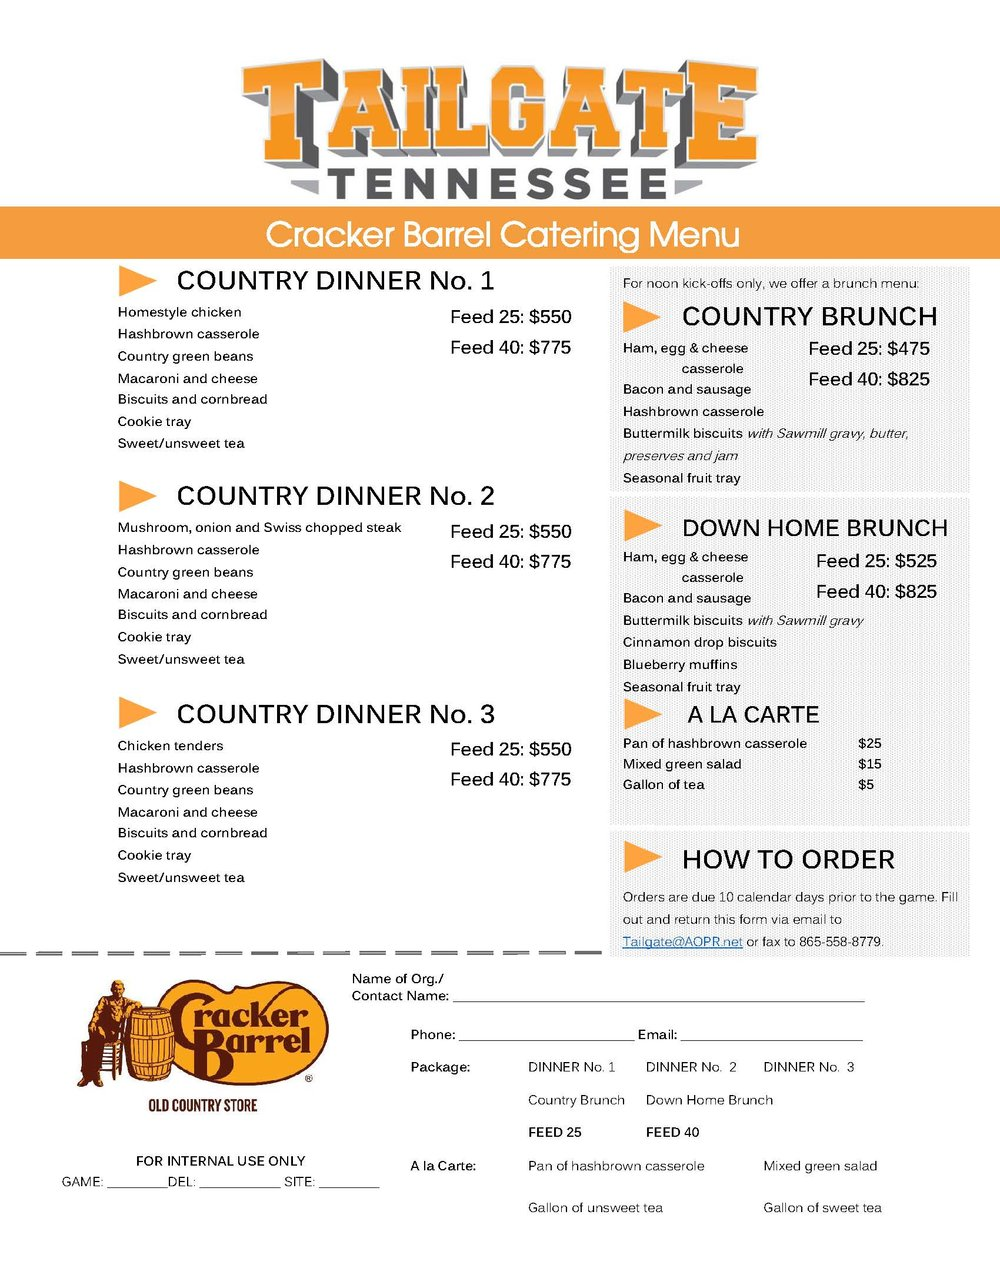 Cracker Barrel 2018 Catering Menu